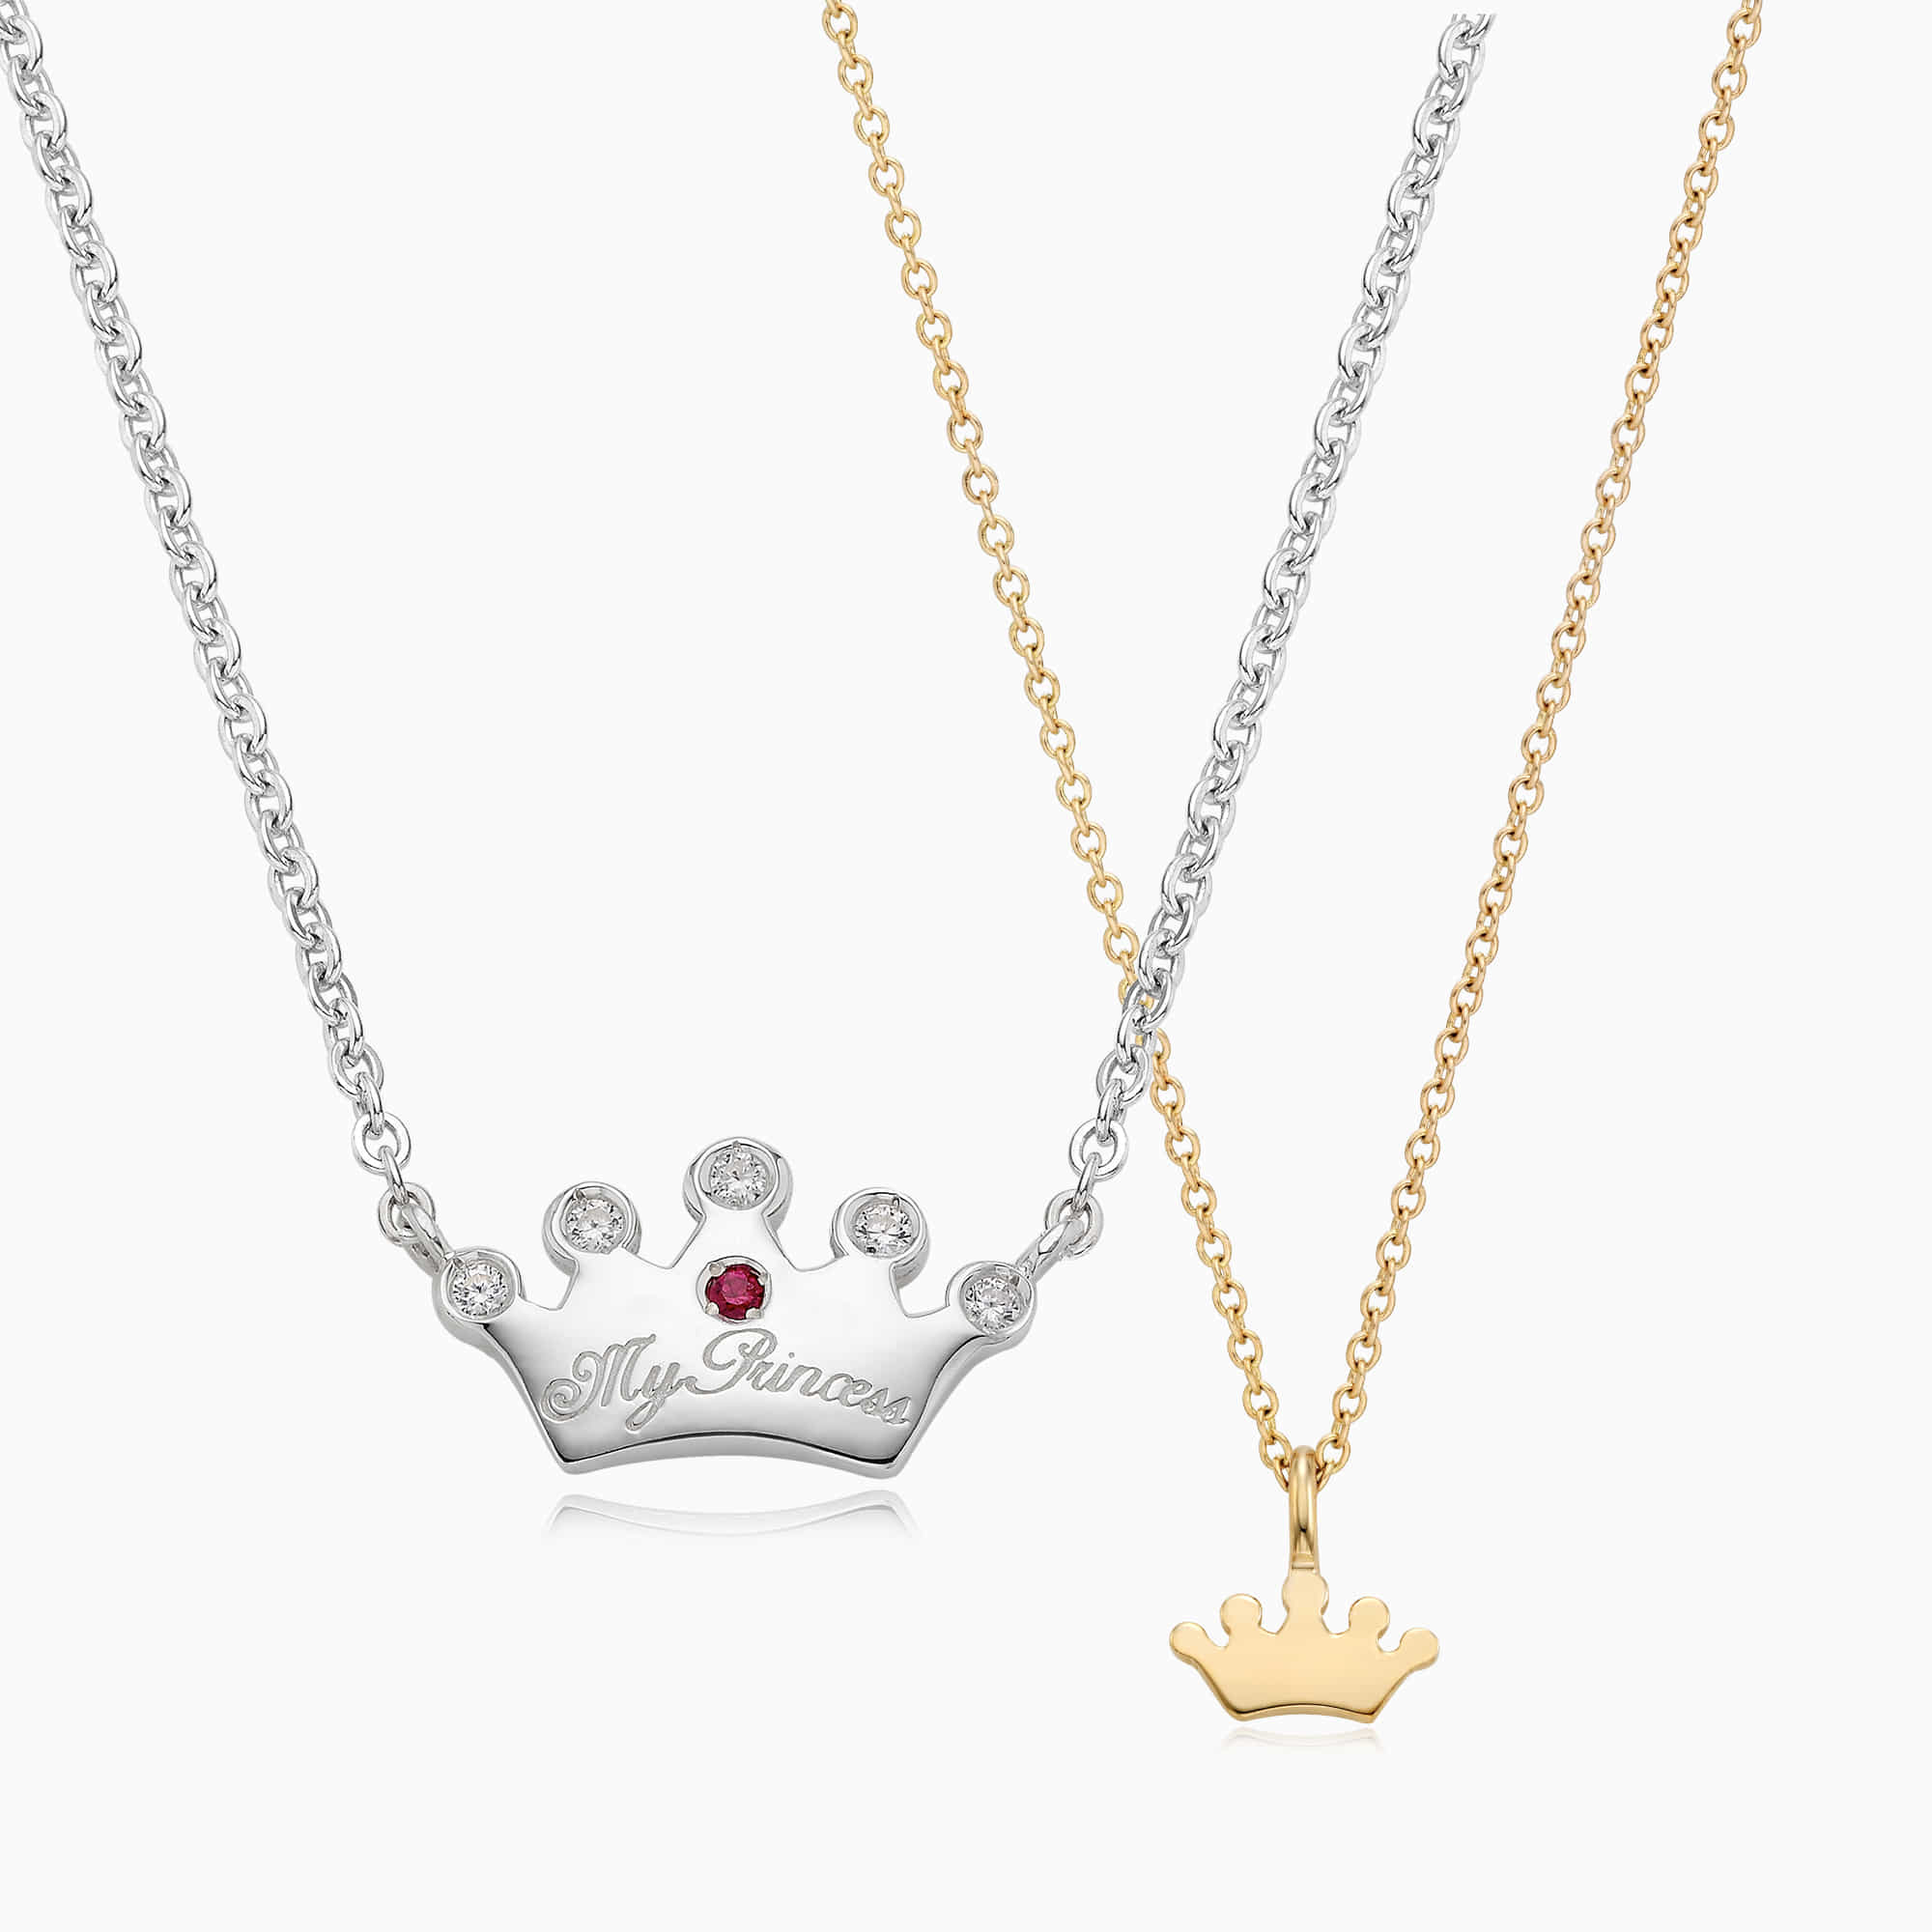 [With My Child] Silver/14K/18K Crown Necklace